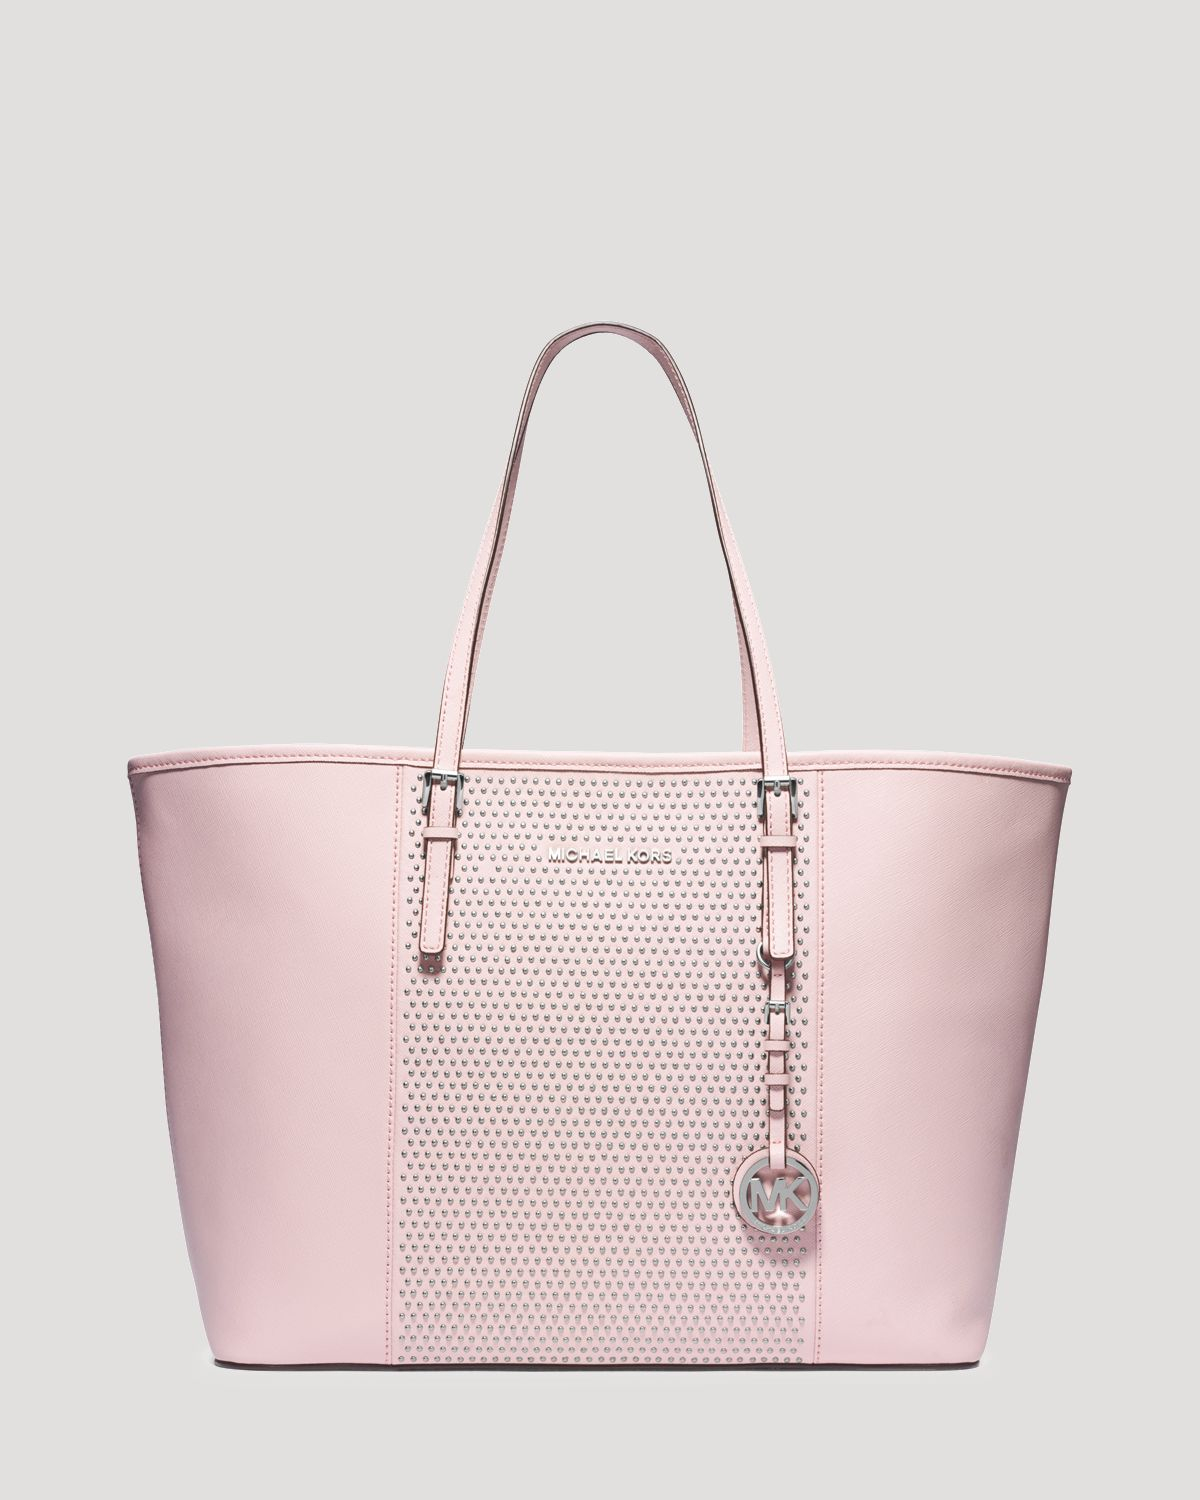 41a734507683 Michael Kors Handbags At Bloomingdale's | Stanford Center for ...